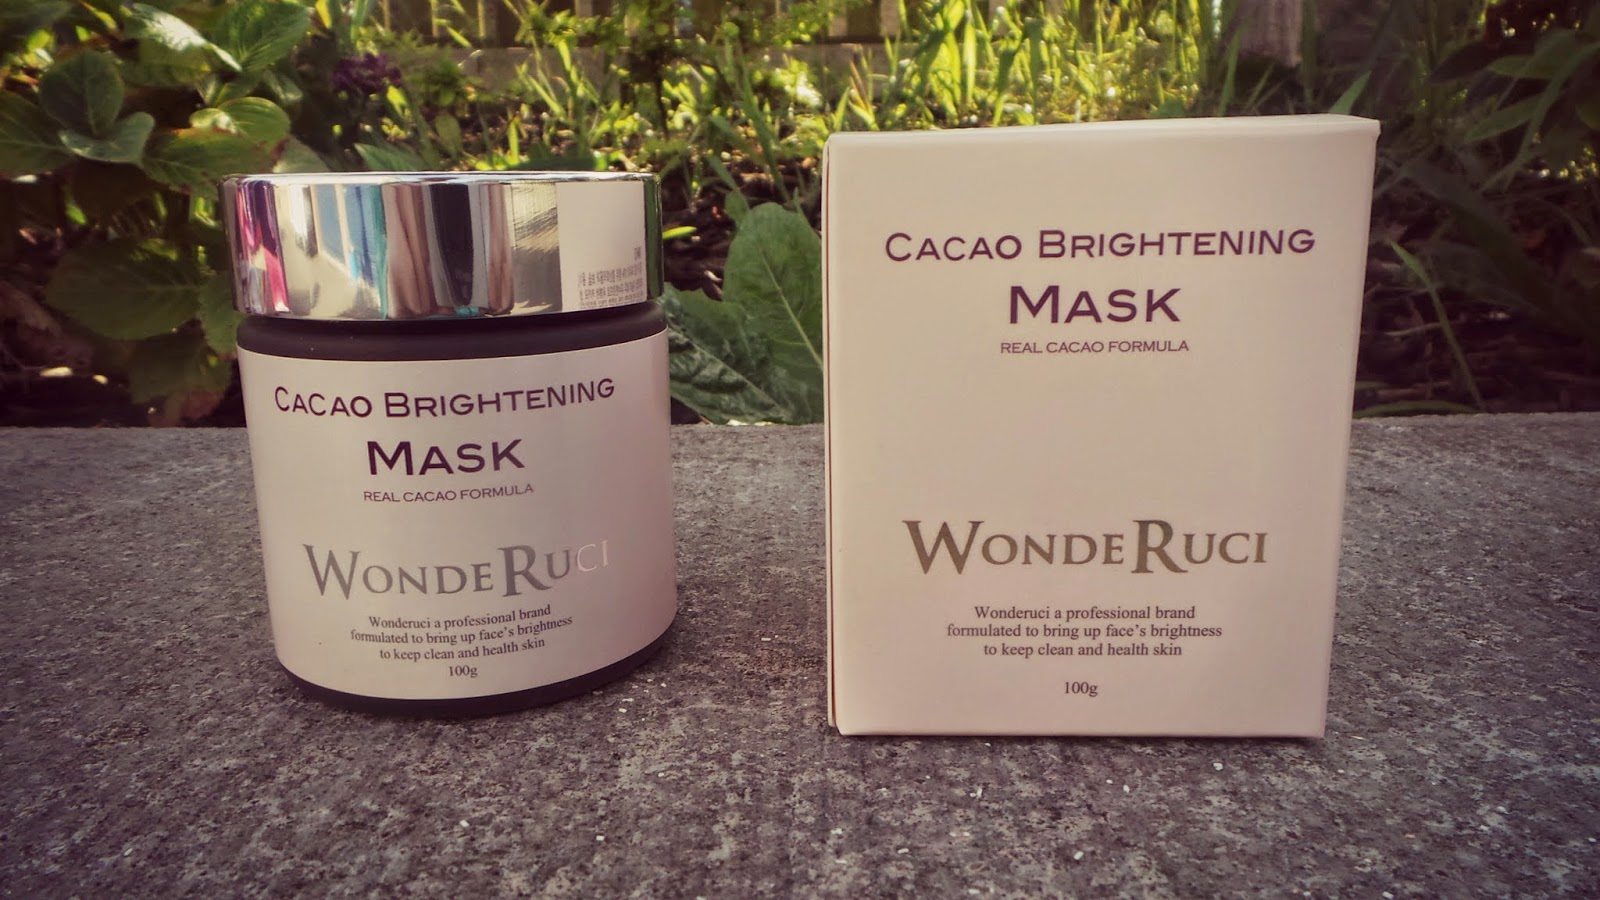 cacao brightening wonderuci mask